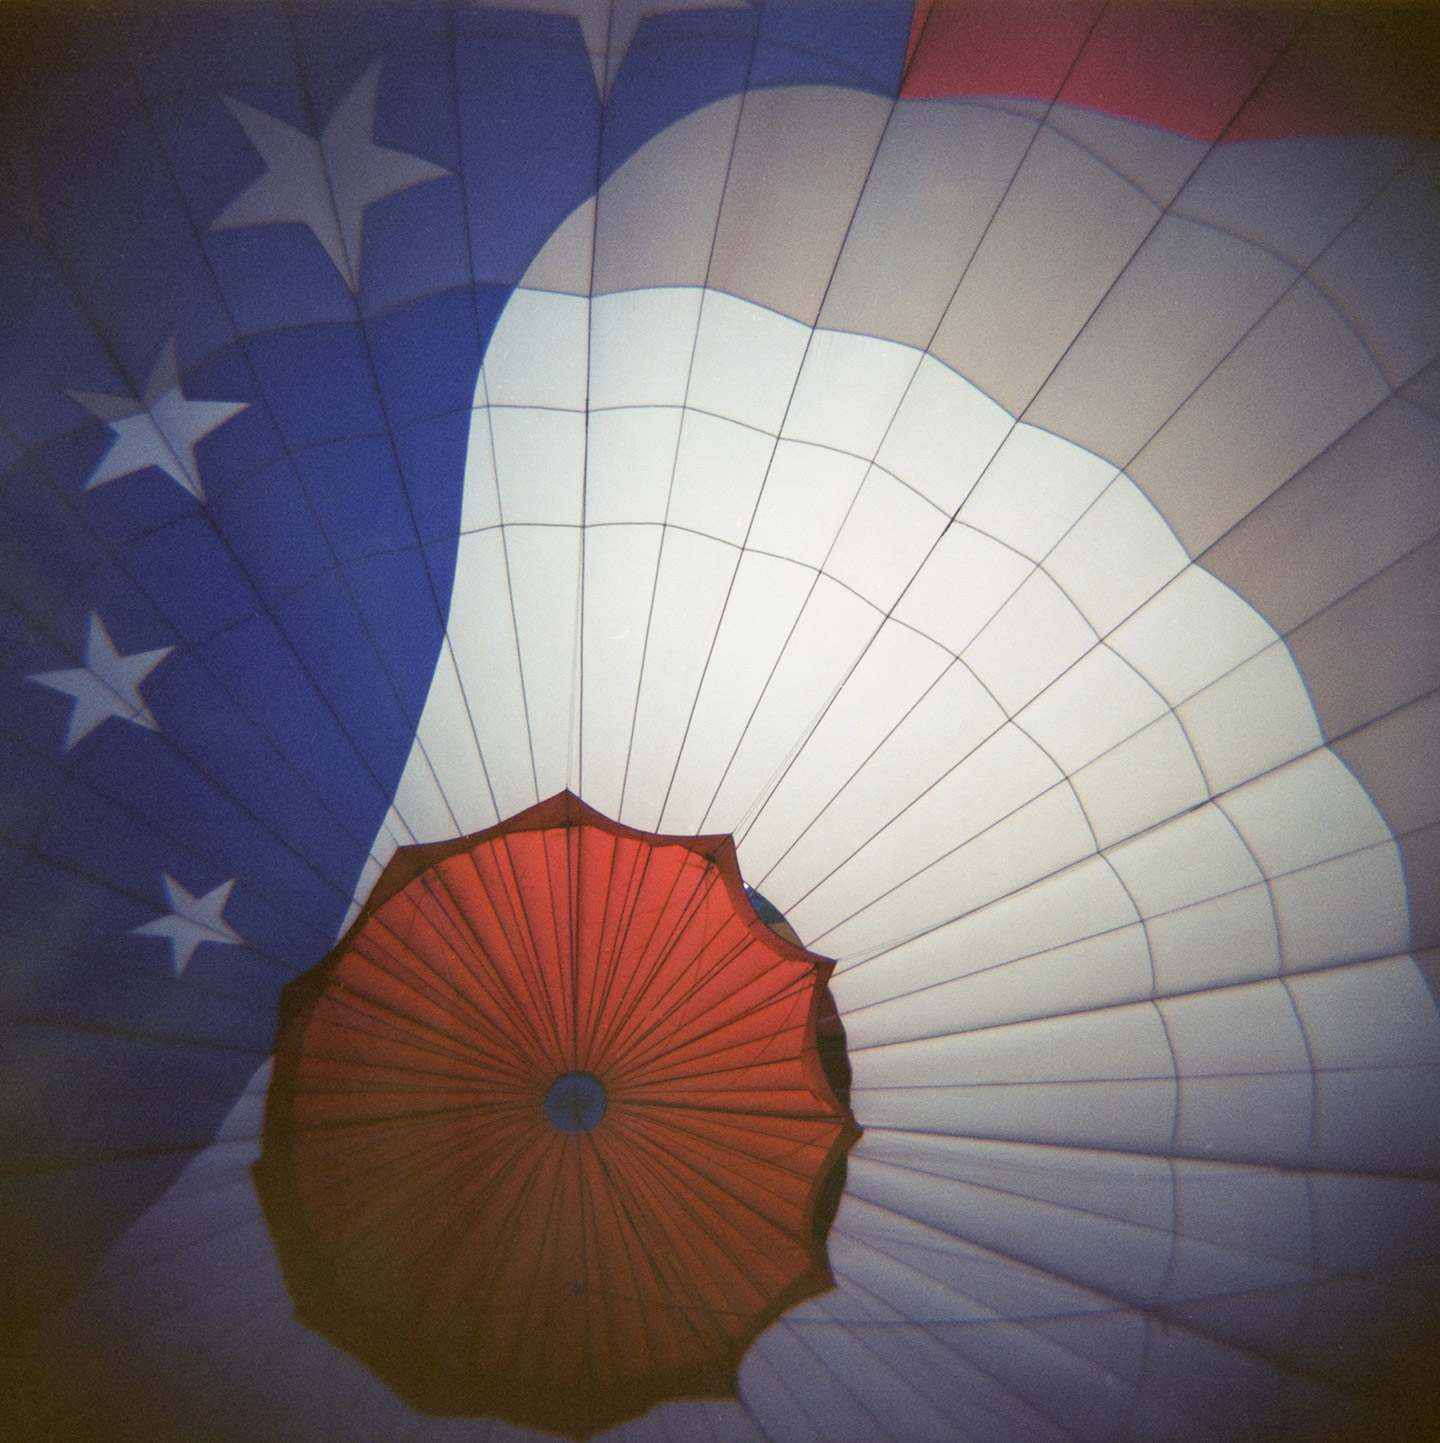 Inside the Stars and Stripes hot air balloon